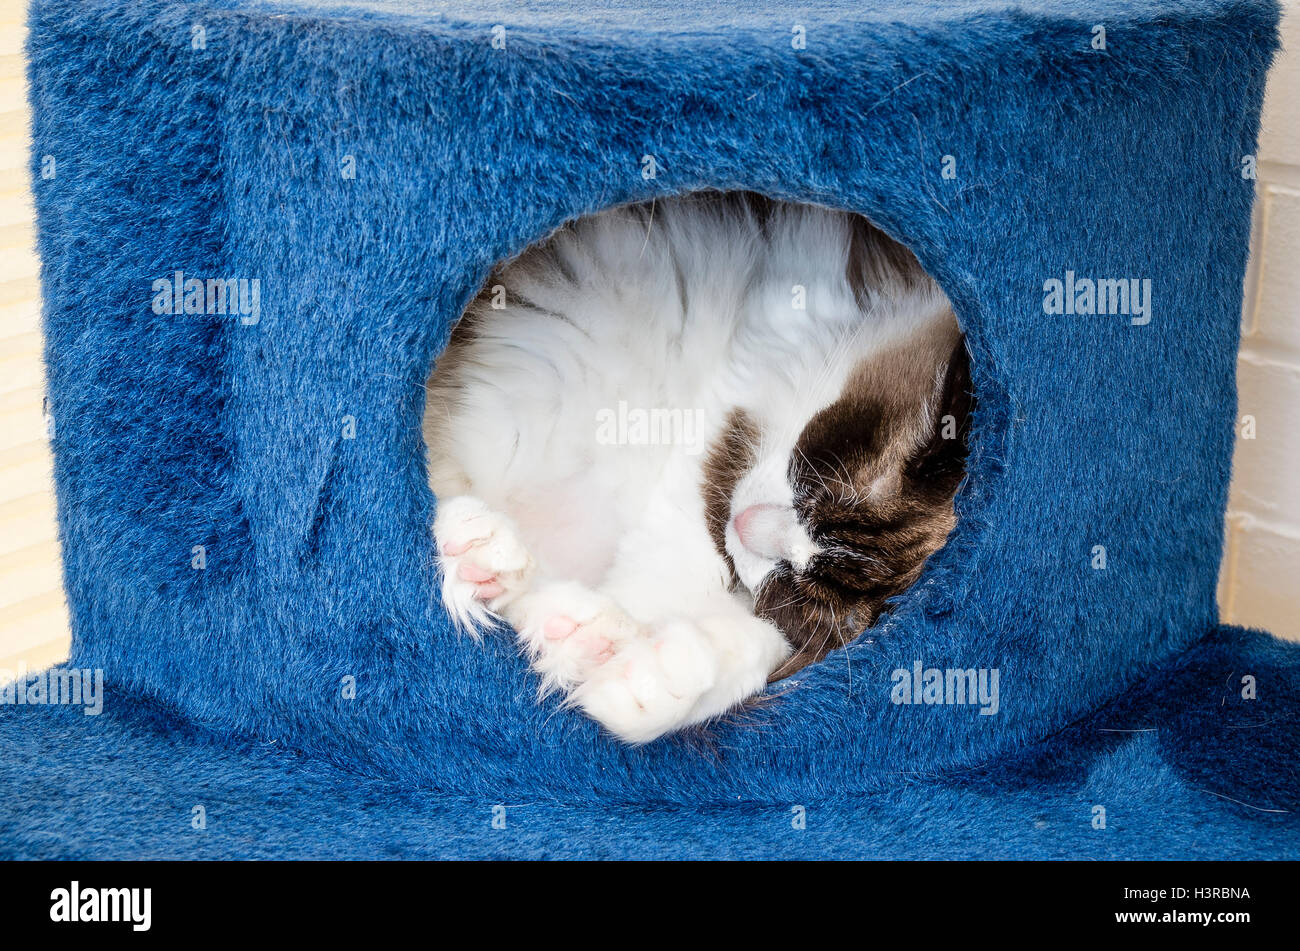 Ragdpll cat sleeping inside a pet's cave on a climbing frrame indoors - Stock Image